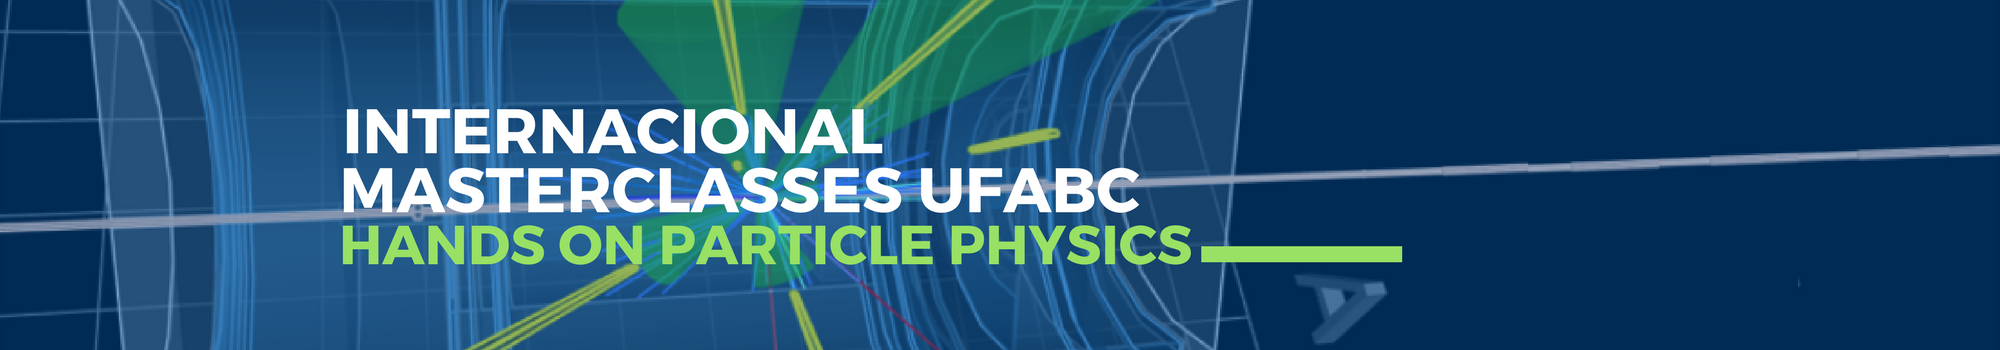 International Masterclasses UFABC – Hands on Particle Physics